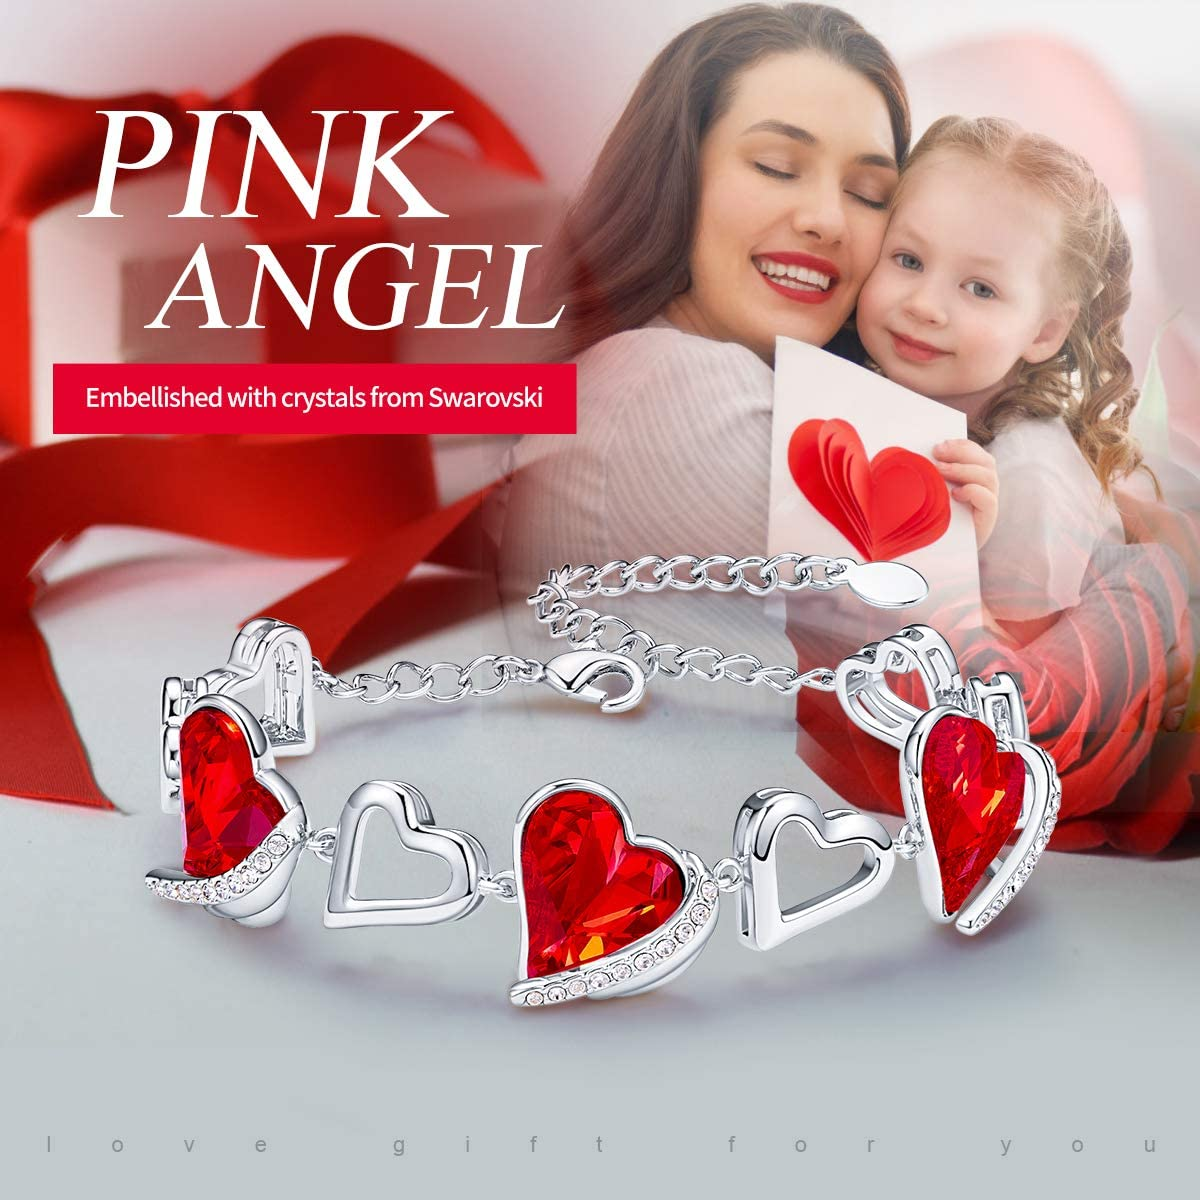 CDE Love Heart Bracelets for Womens 18K White/Rose Gold Plated Bracelets Embellished with Crystals Jewellery Birthday Gifts for Her/Ladies/Mum Red, 18ct White Gold